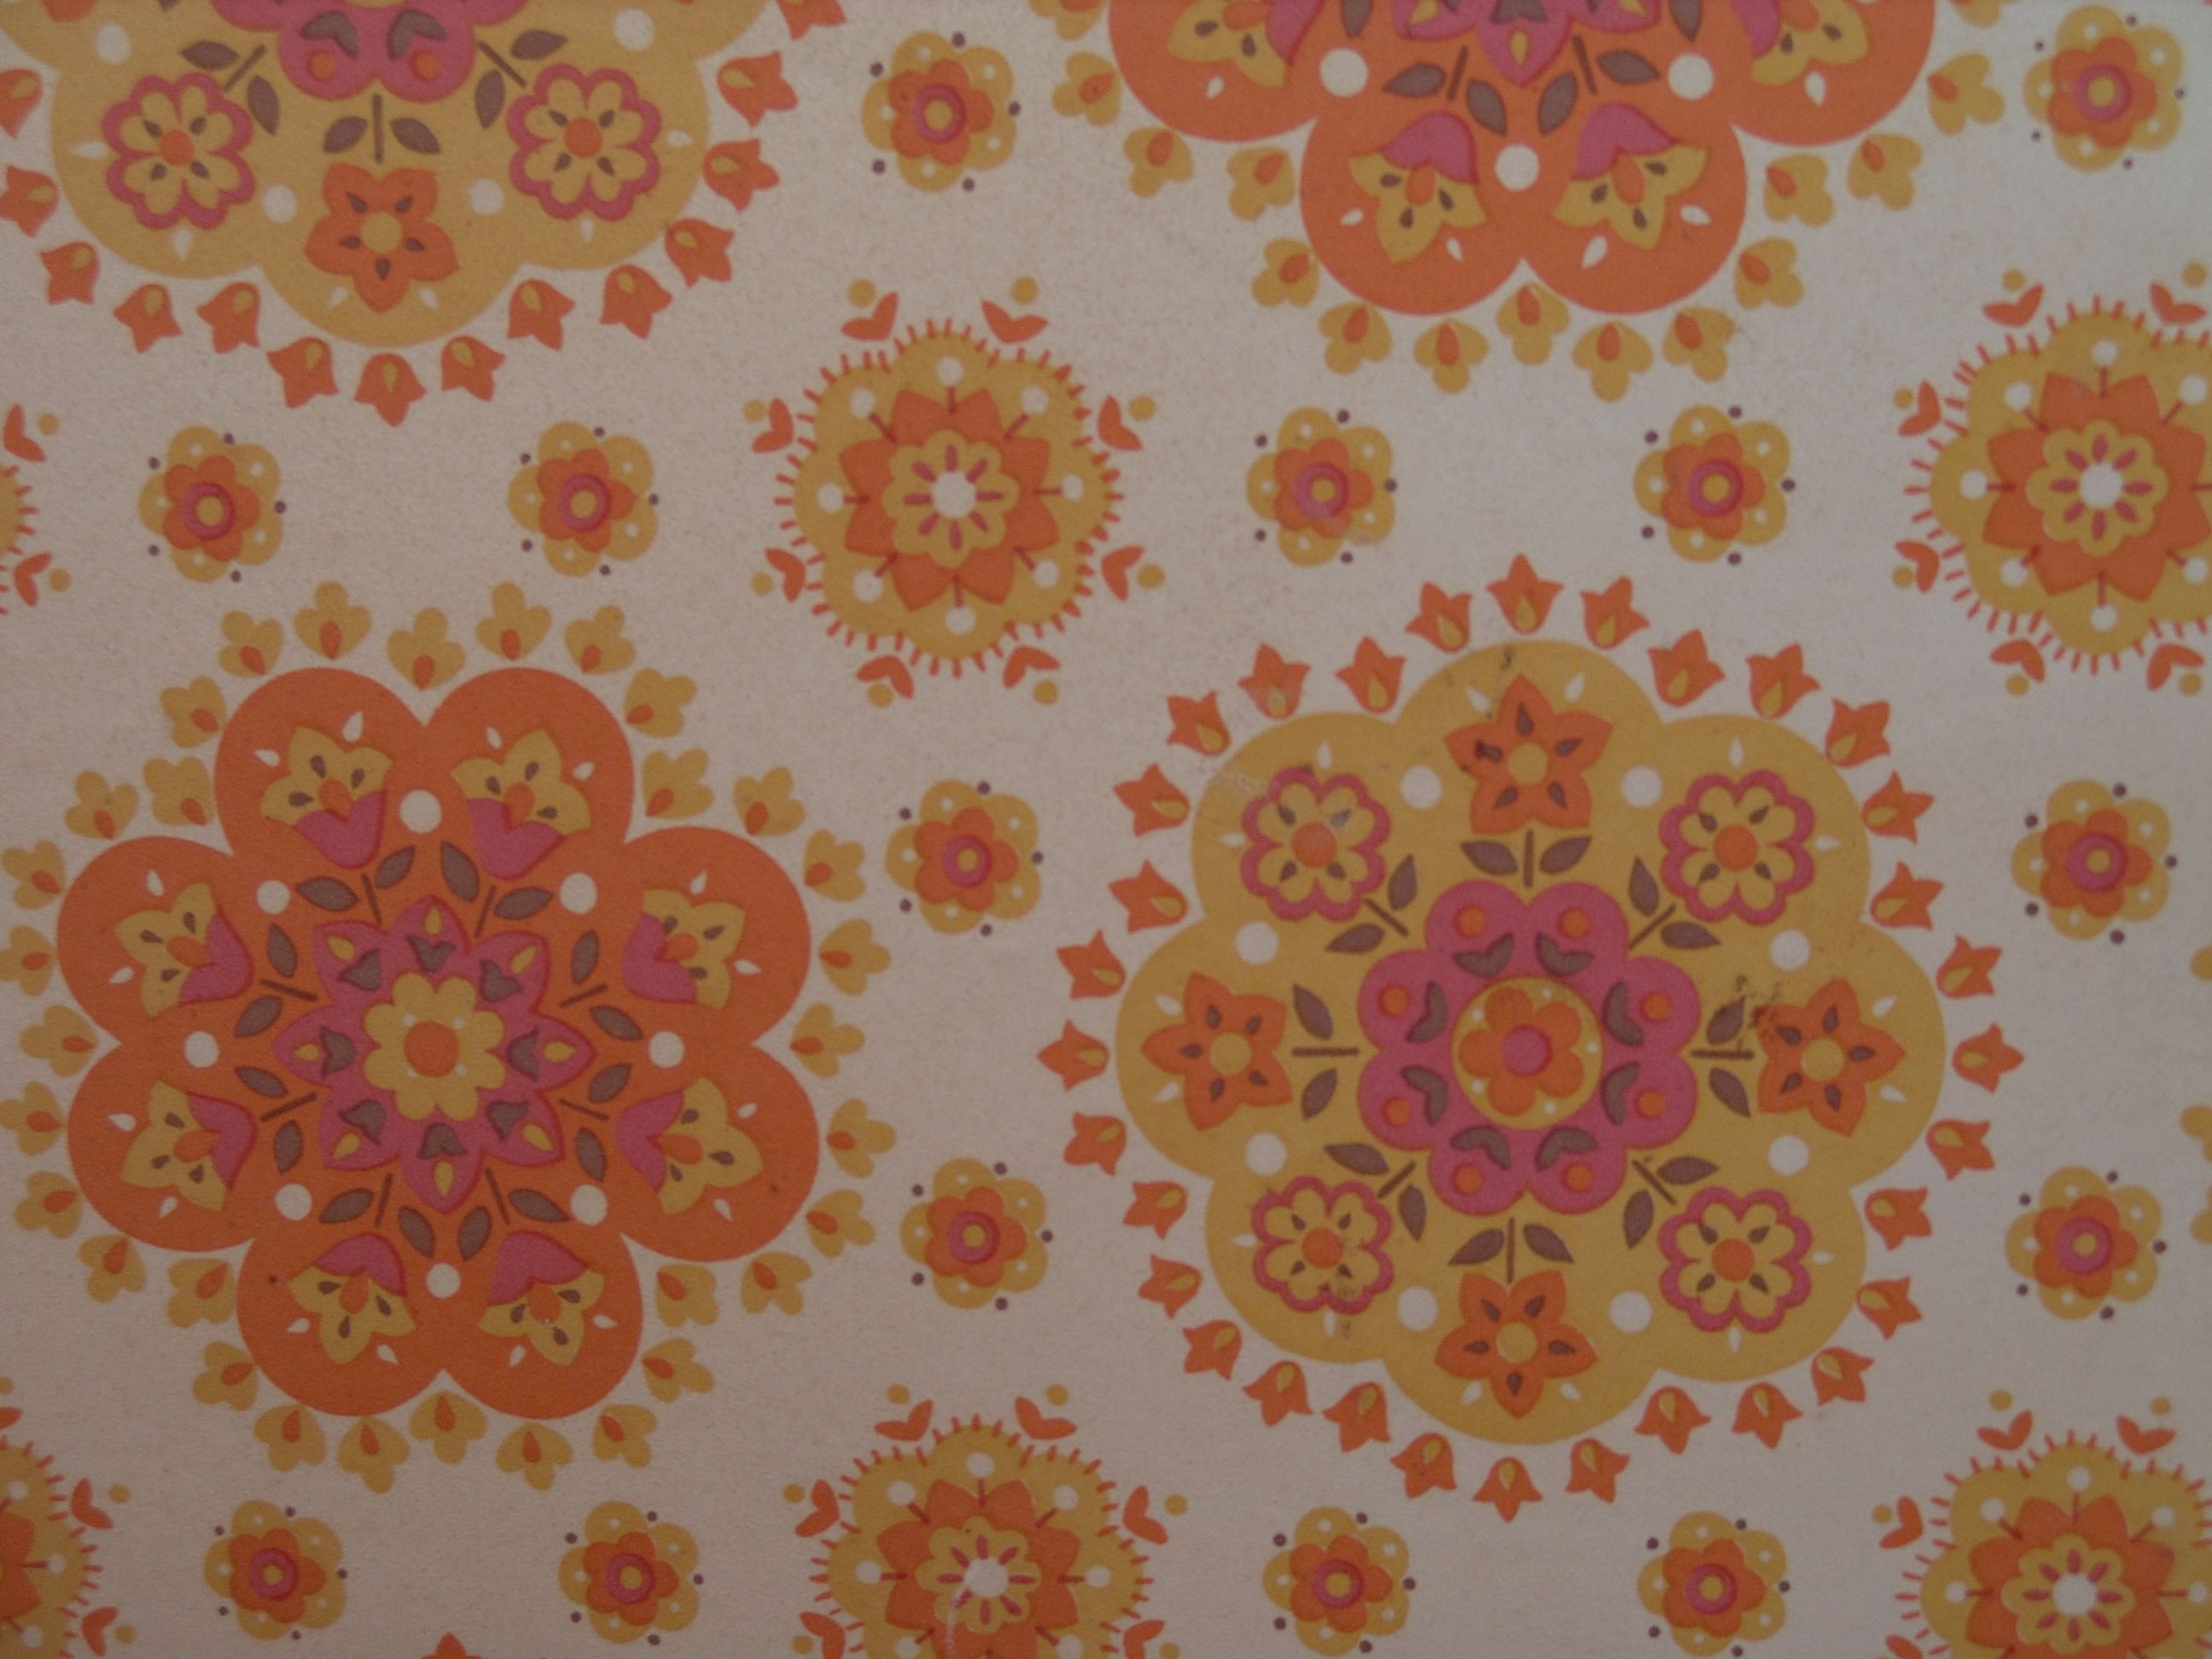 Pink Flower Wallpaper For Bedrooms Yellow Orange Pink Circular Flower For The Munchkins Pinterest